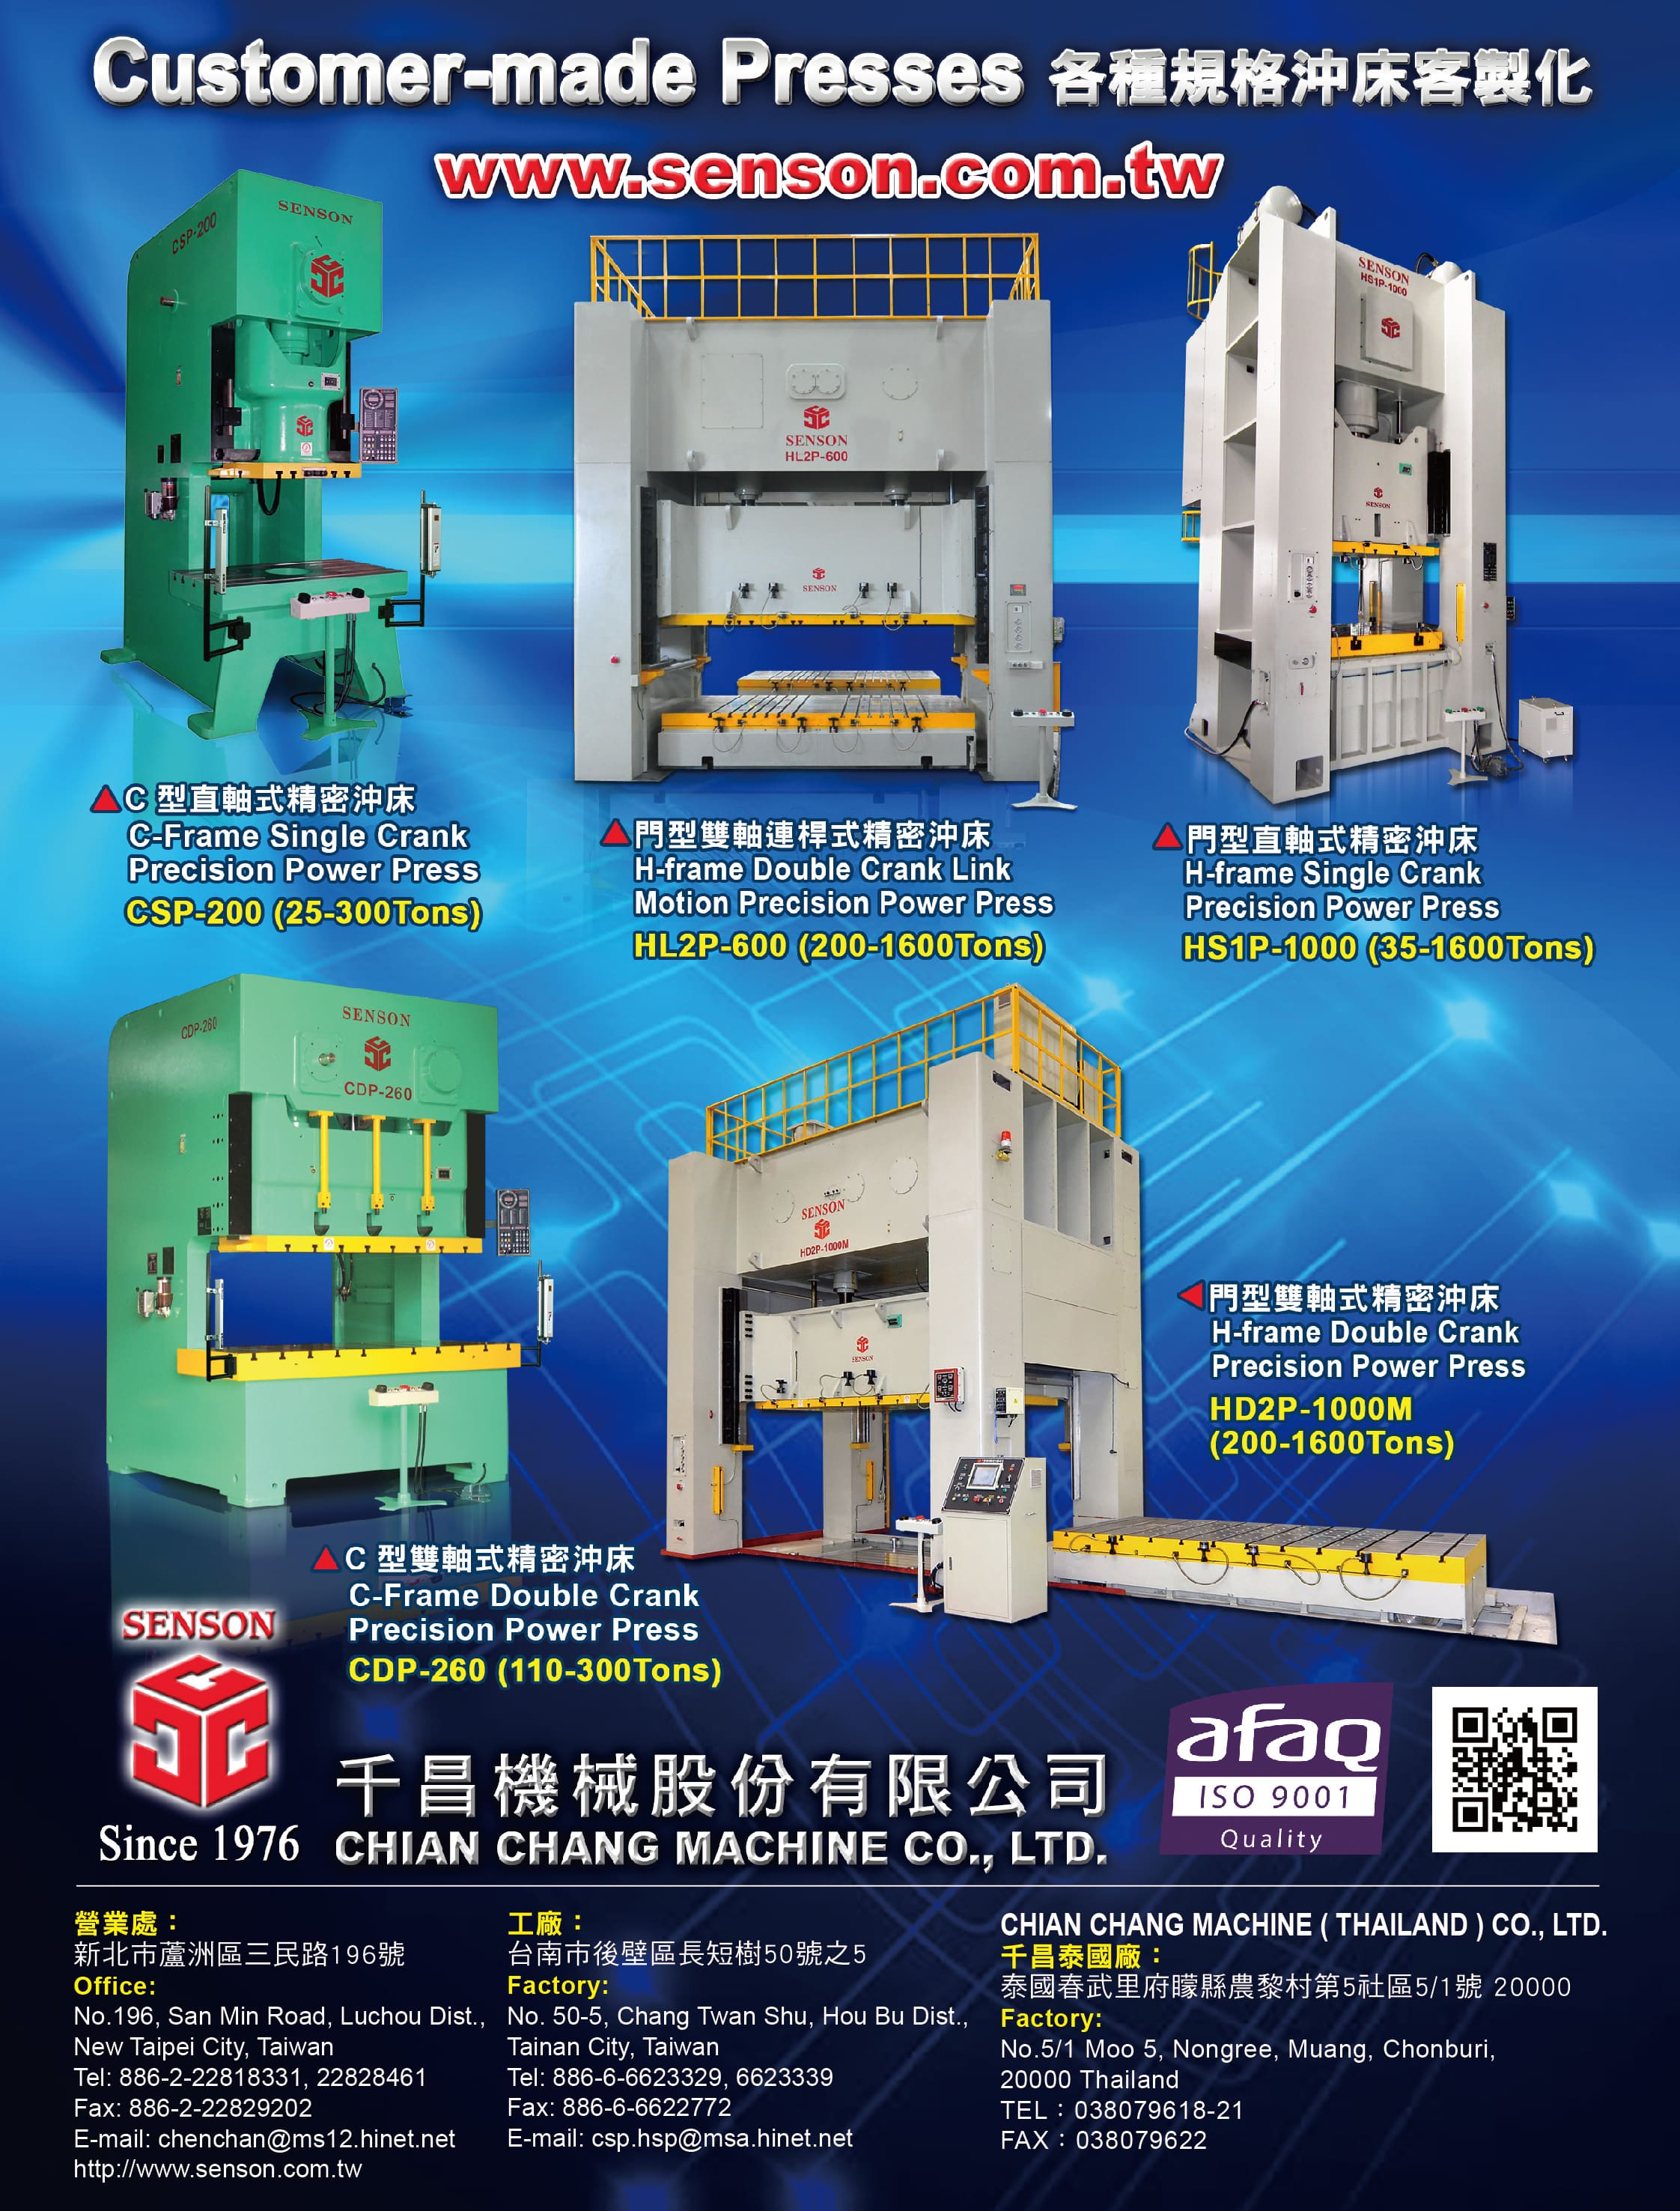 CHIAN CHANG MACHINE CO., LTD.